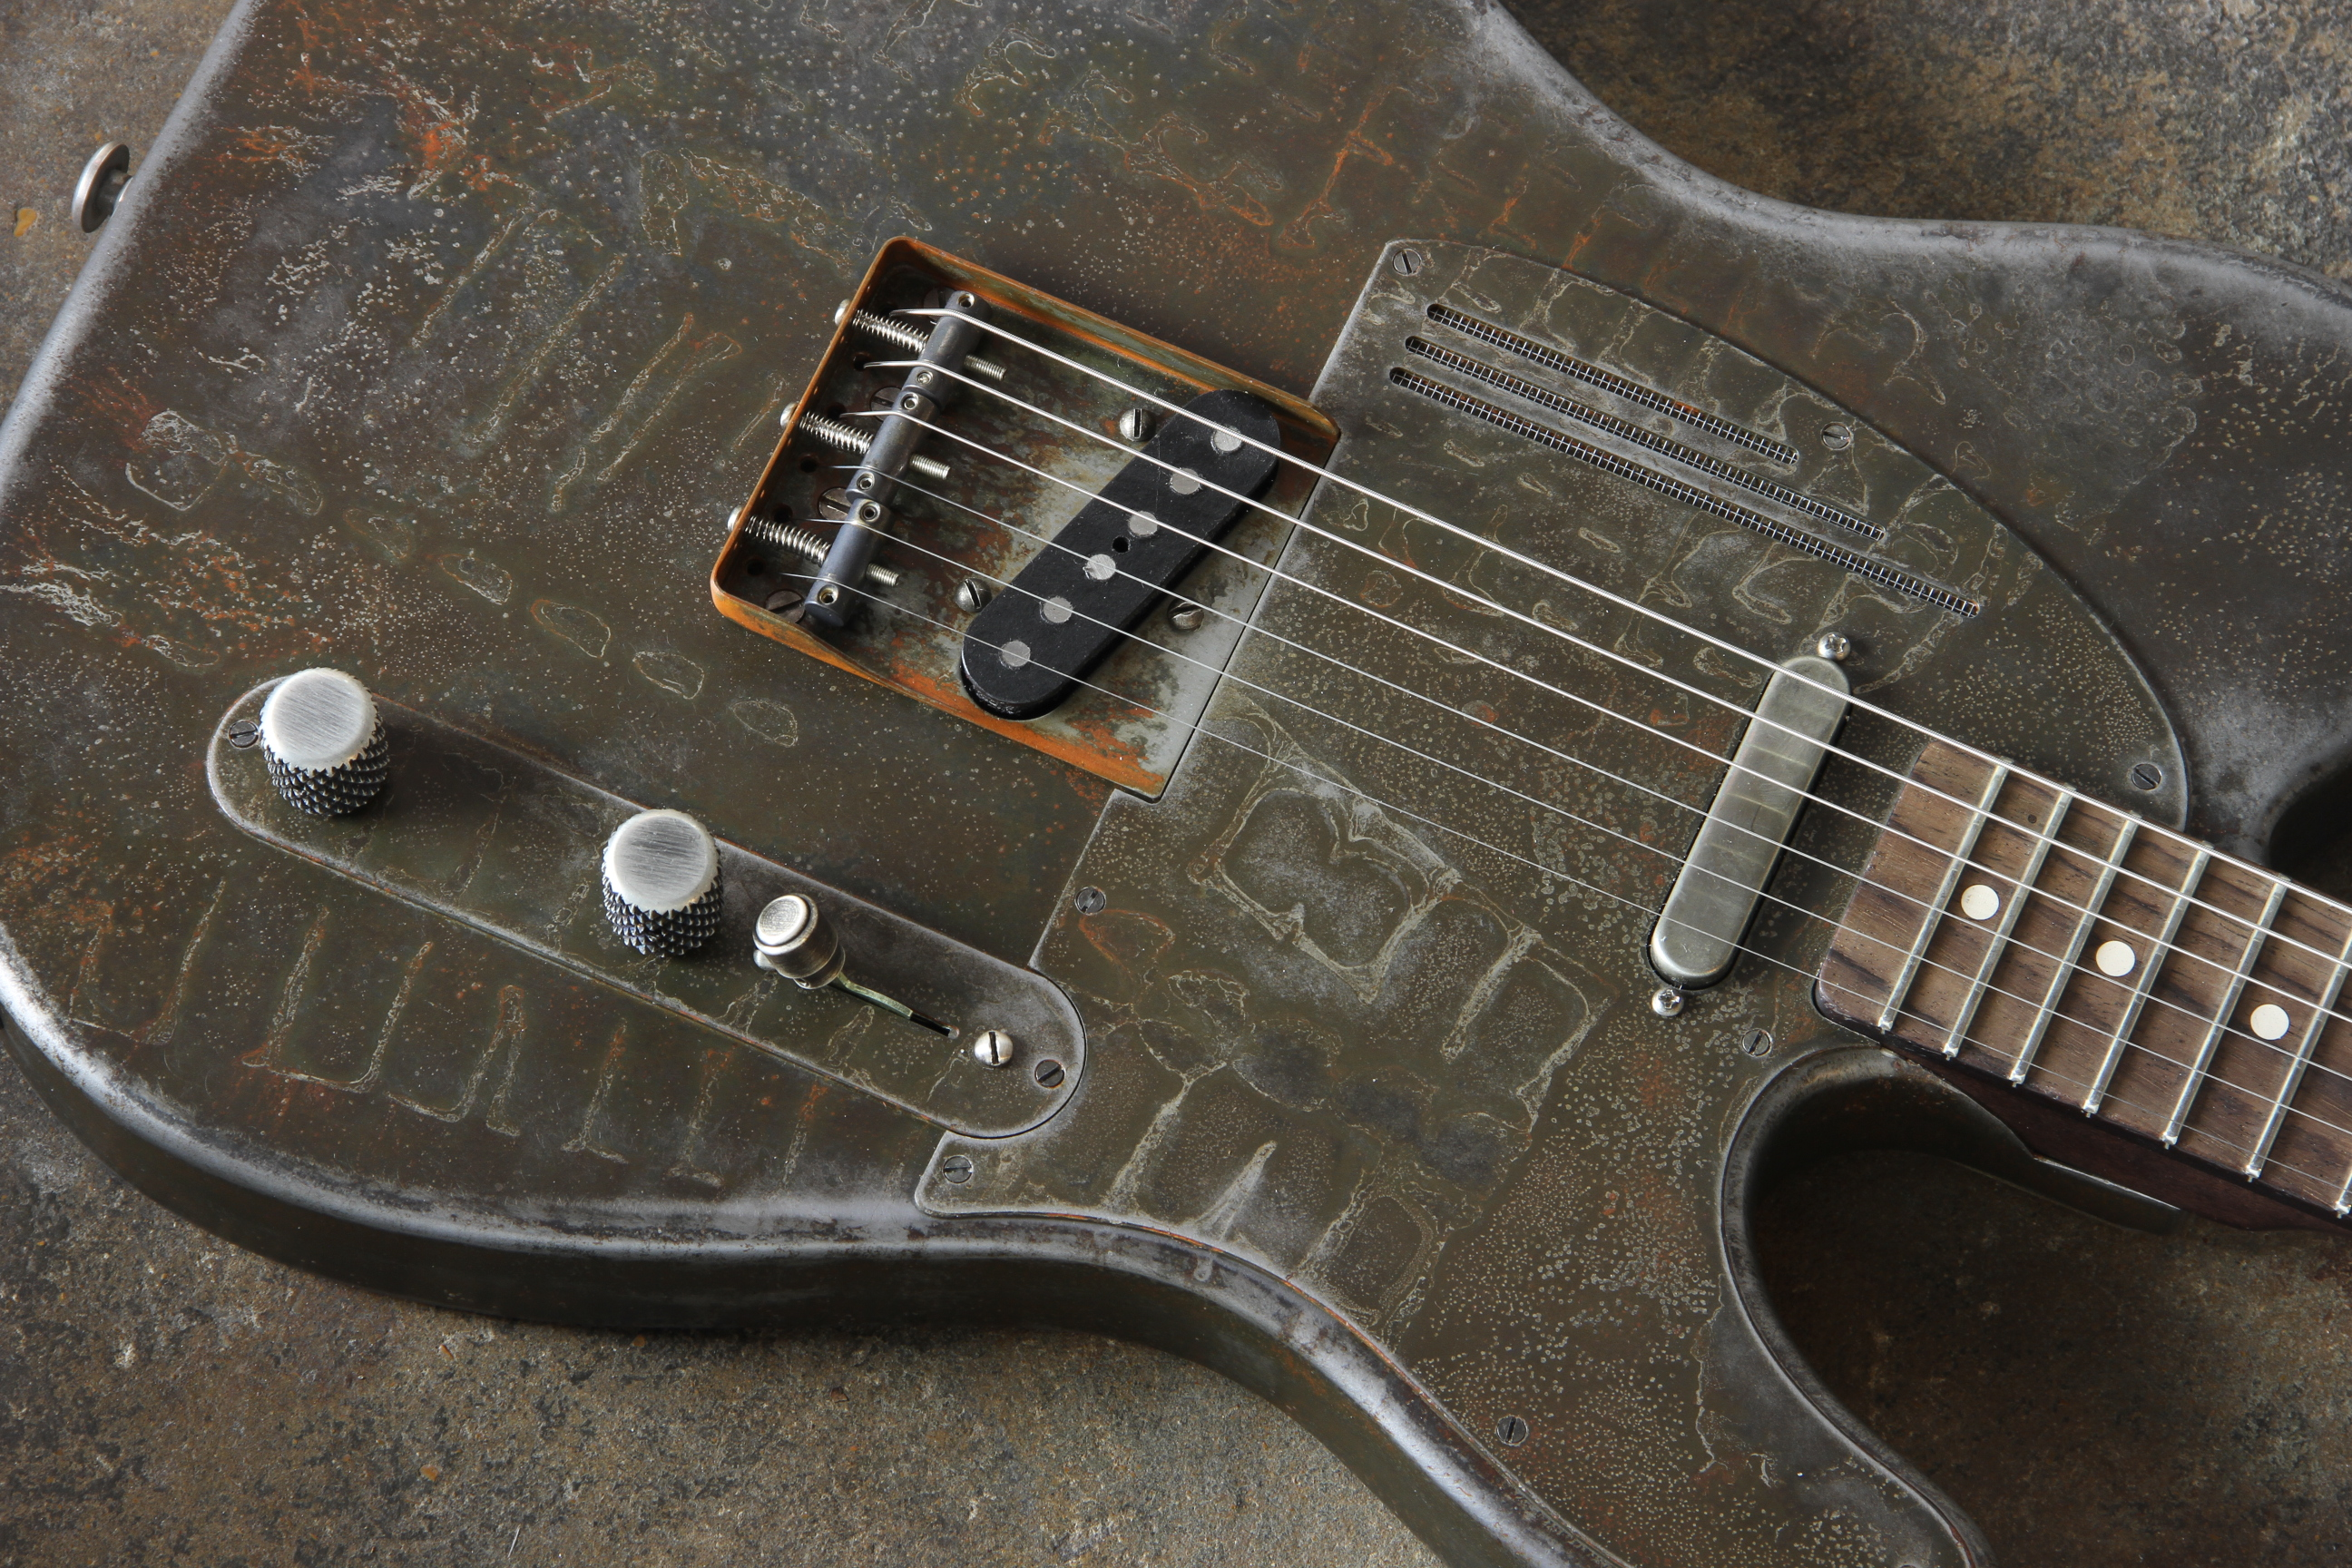 Used Electric Guitars